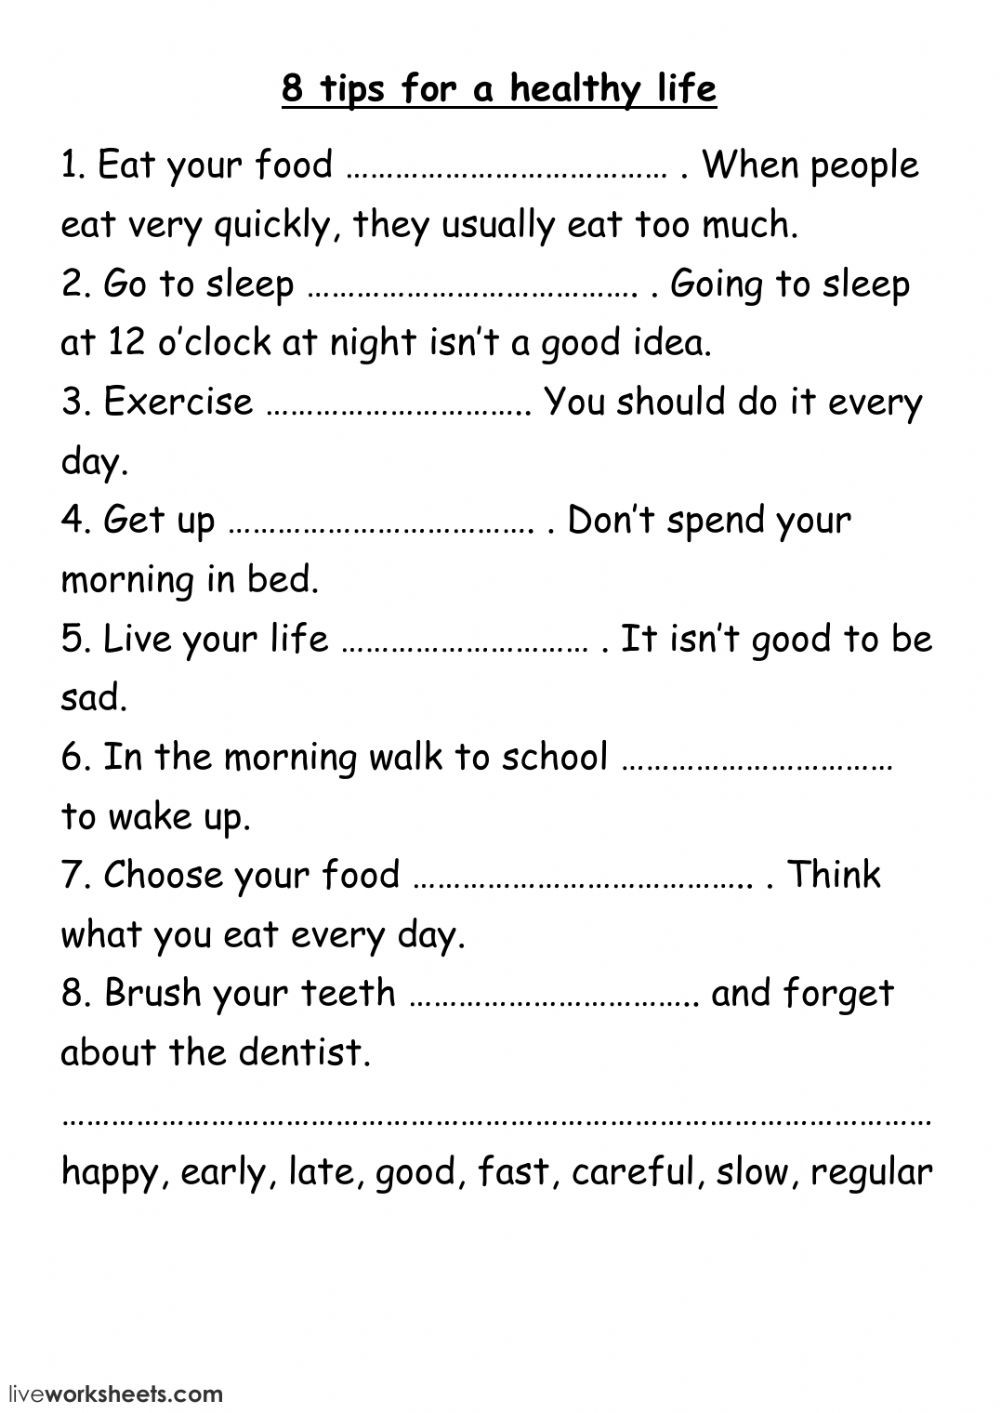 4th Grade Adverb Worksheets Adverbs Interactive Worksheet Manner Worksheets for Grade